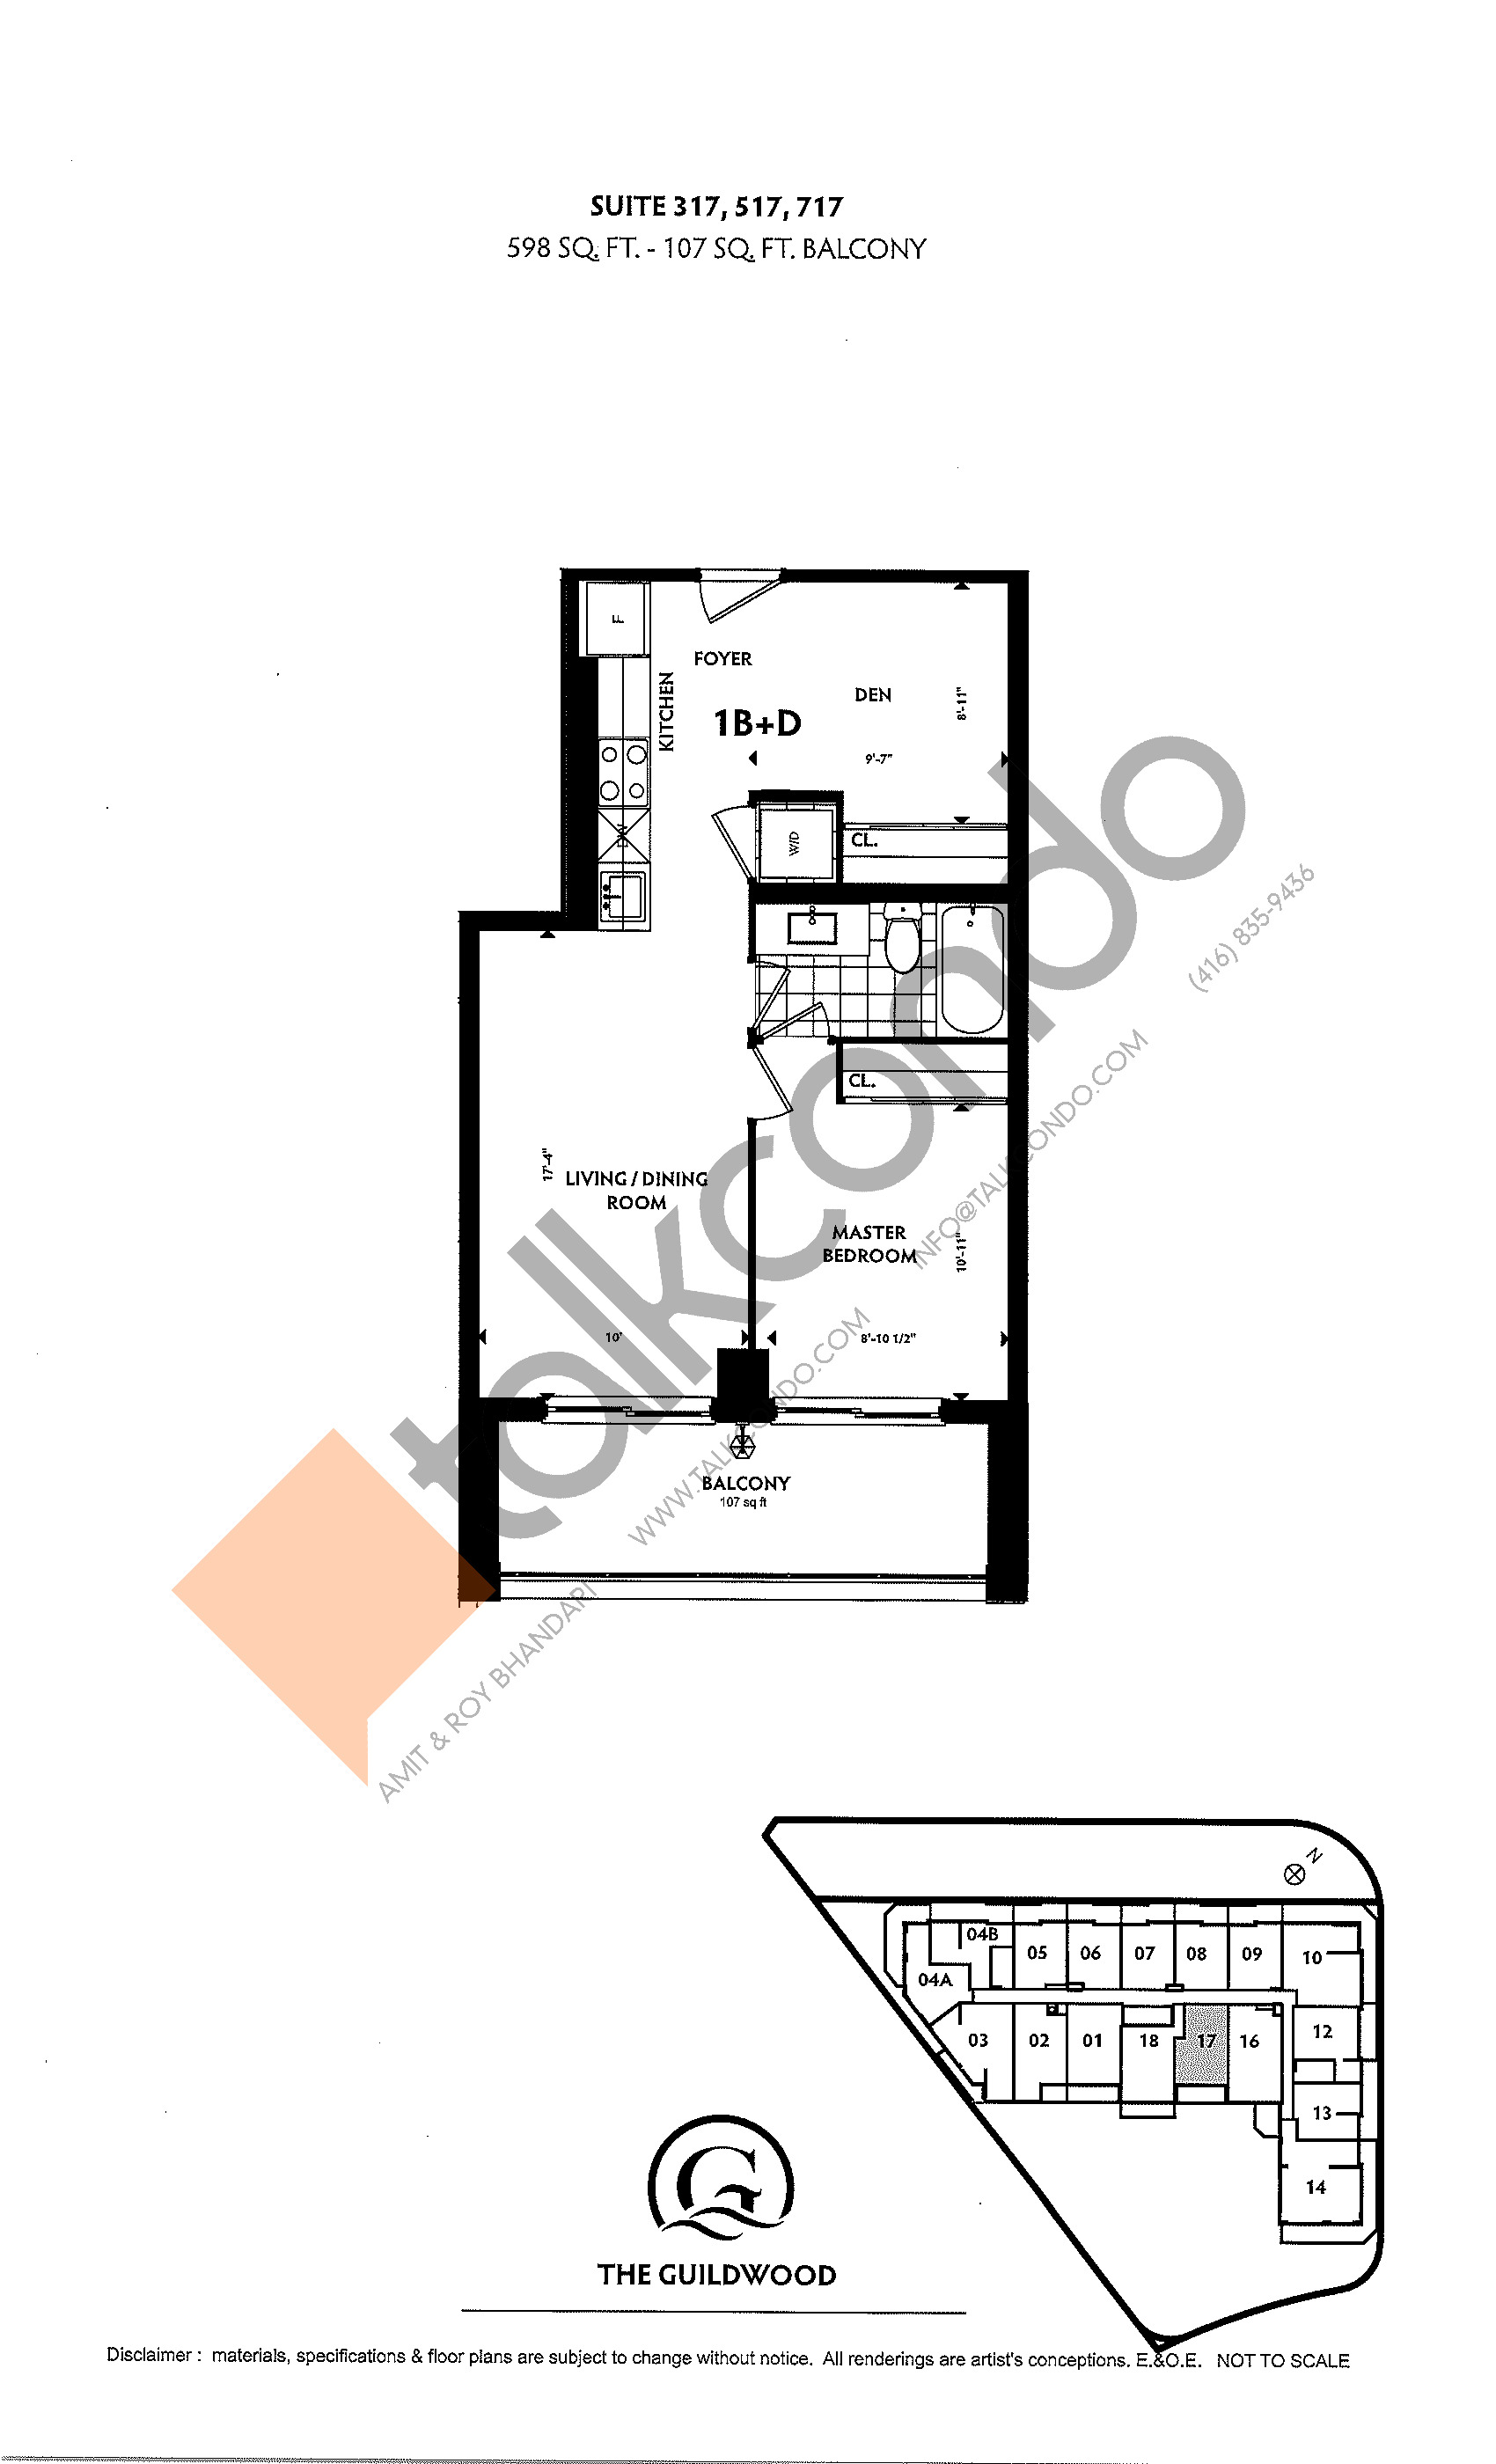 Suite 317, 517, 717 Floor Plan at Guildwood Condos - 598 sq.ft